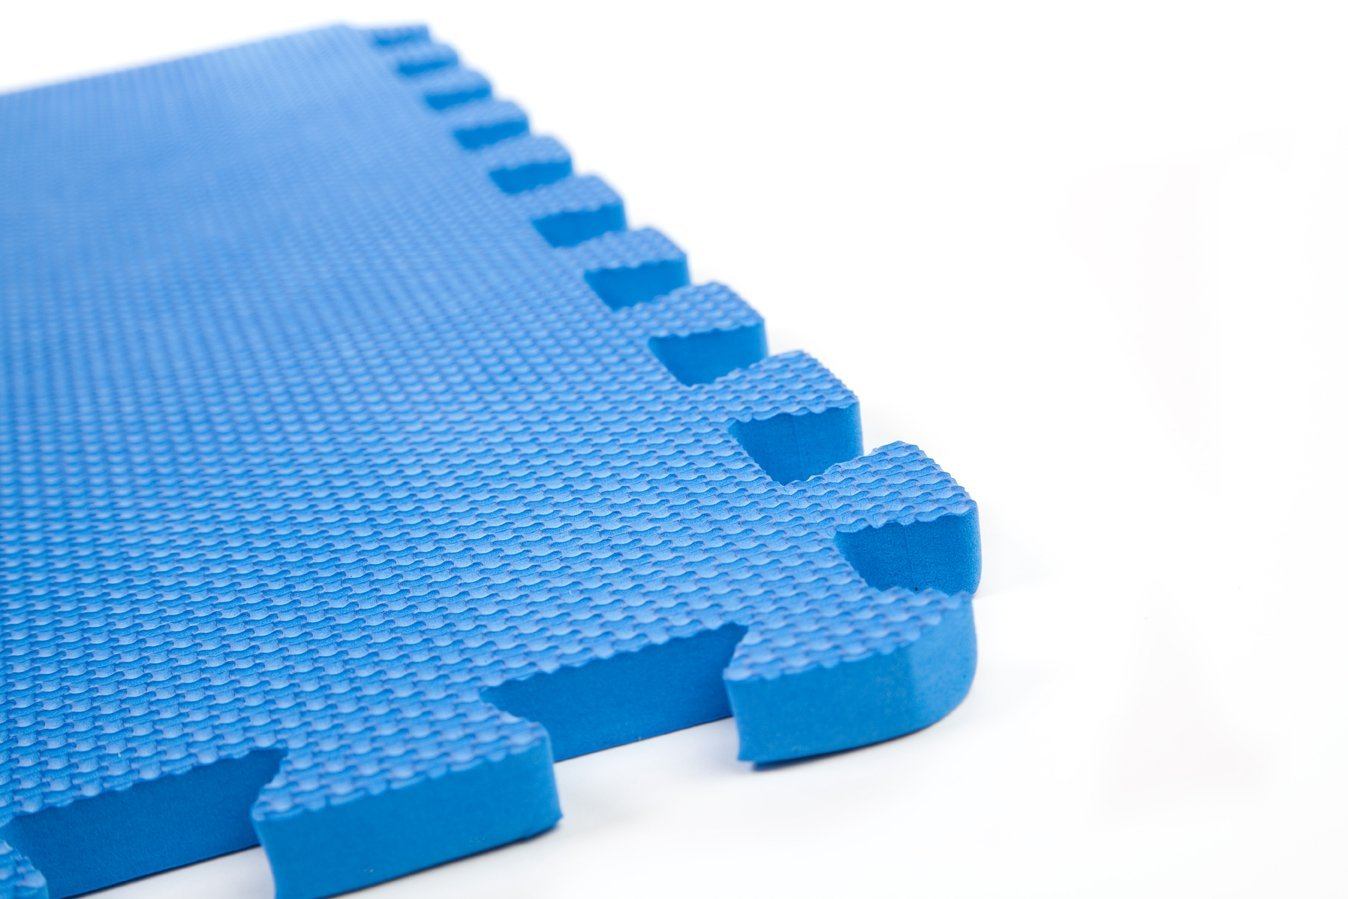 30 X 30 Cm Small Blue Interlocking Eva Soft Foam Exercise